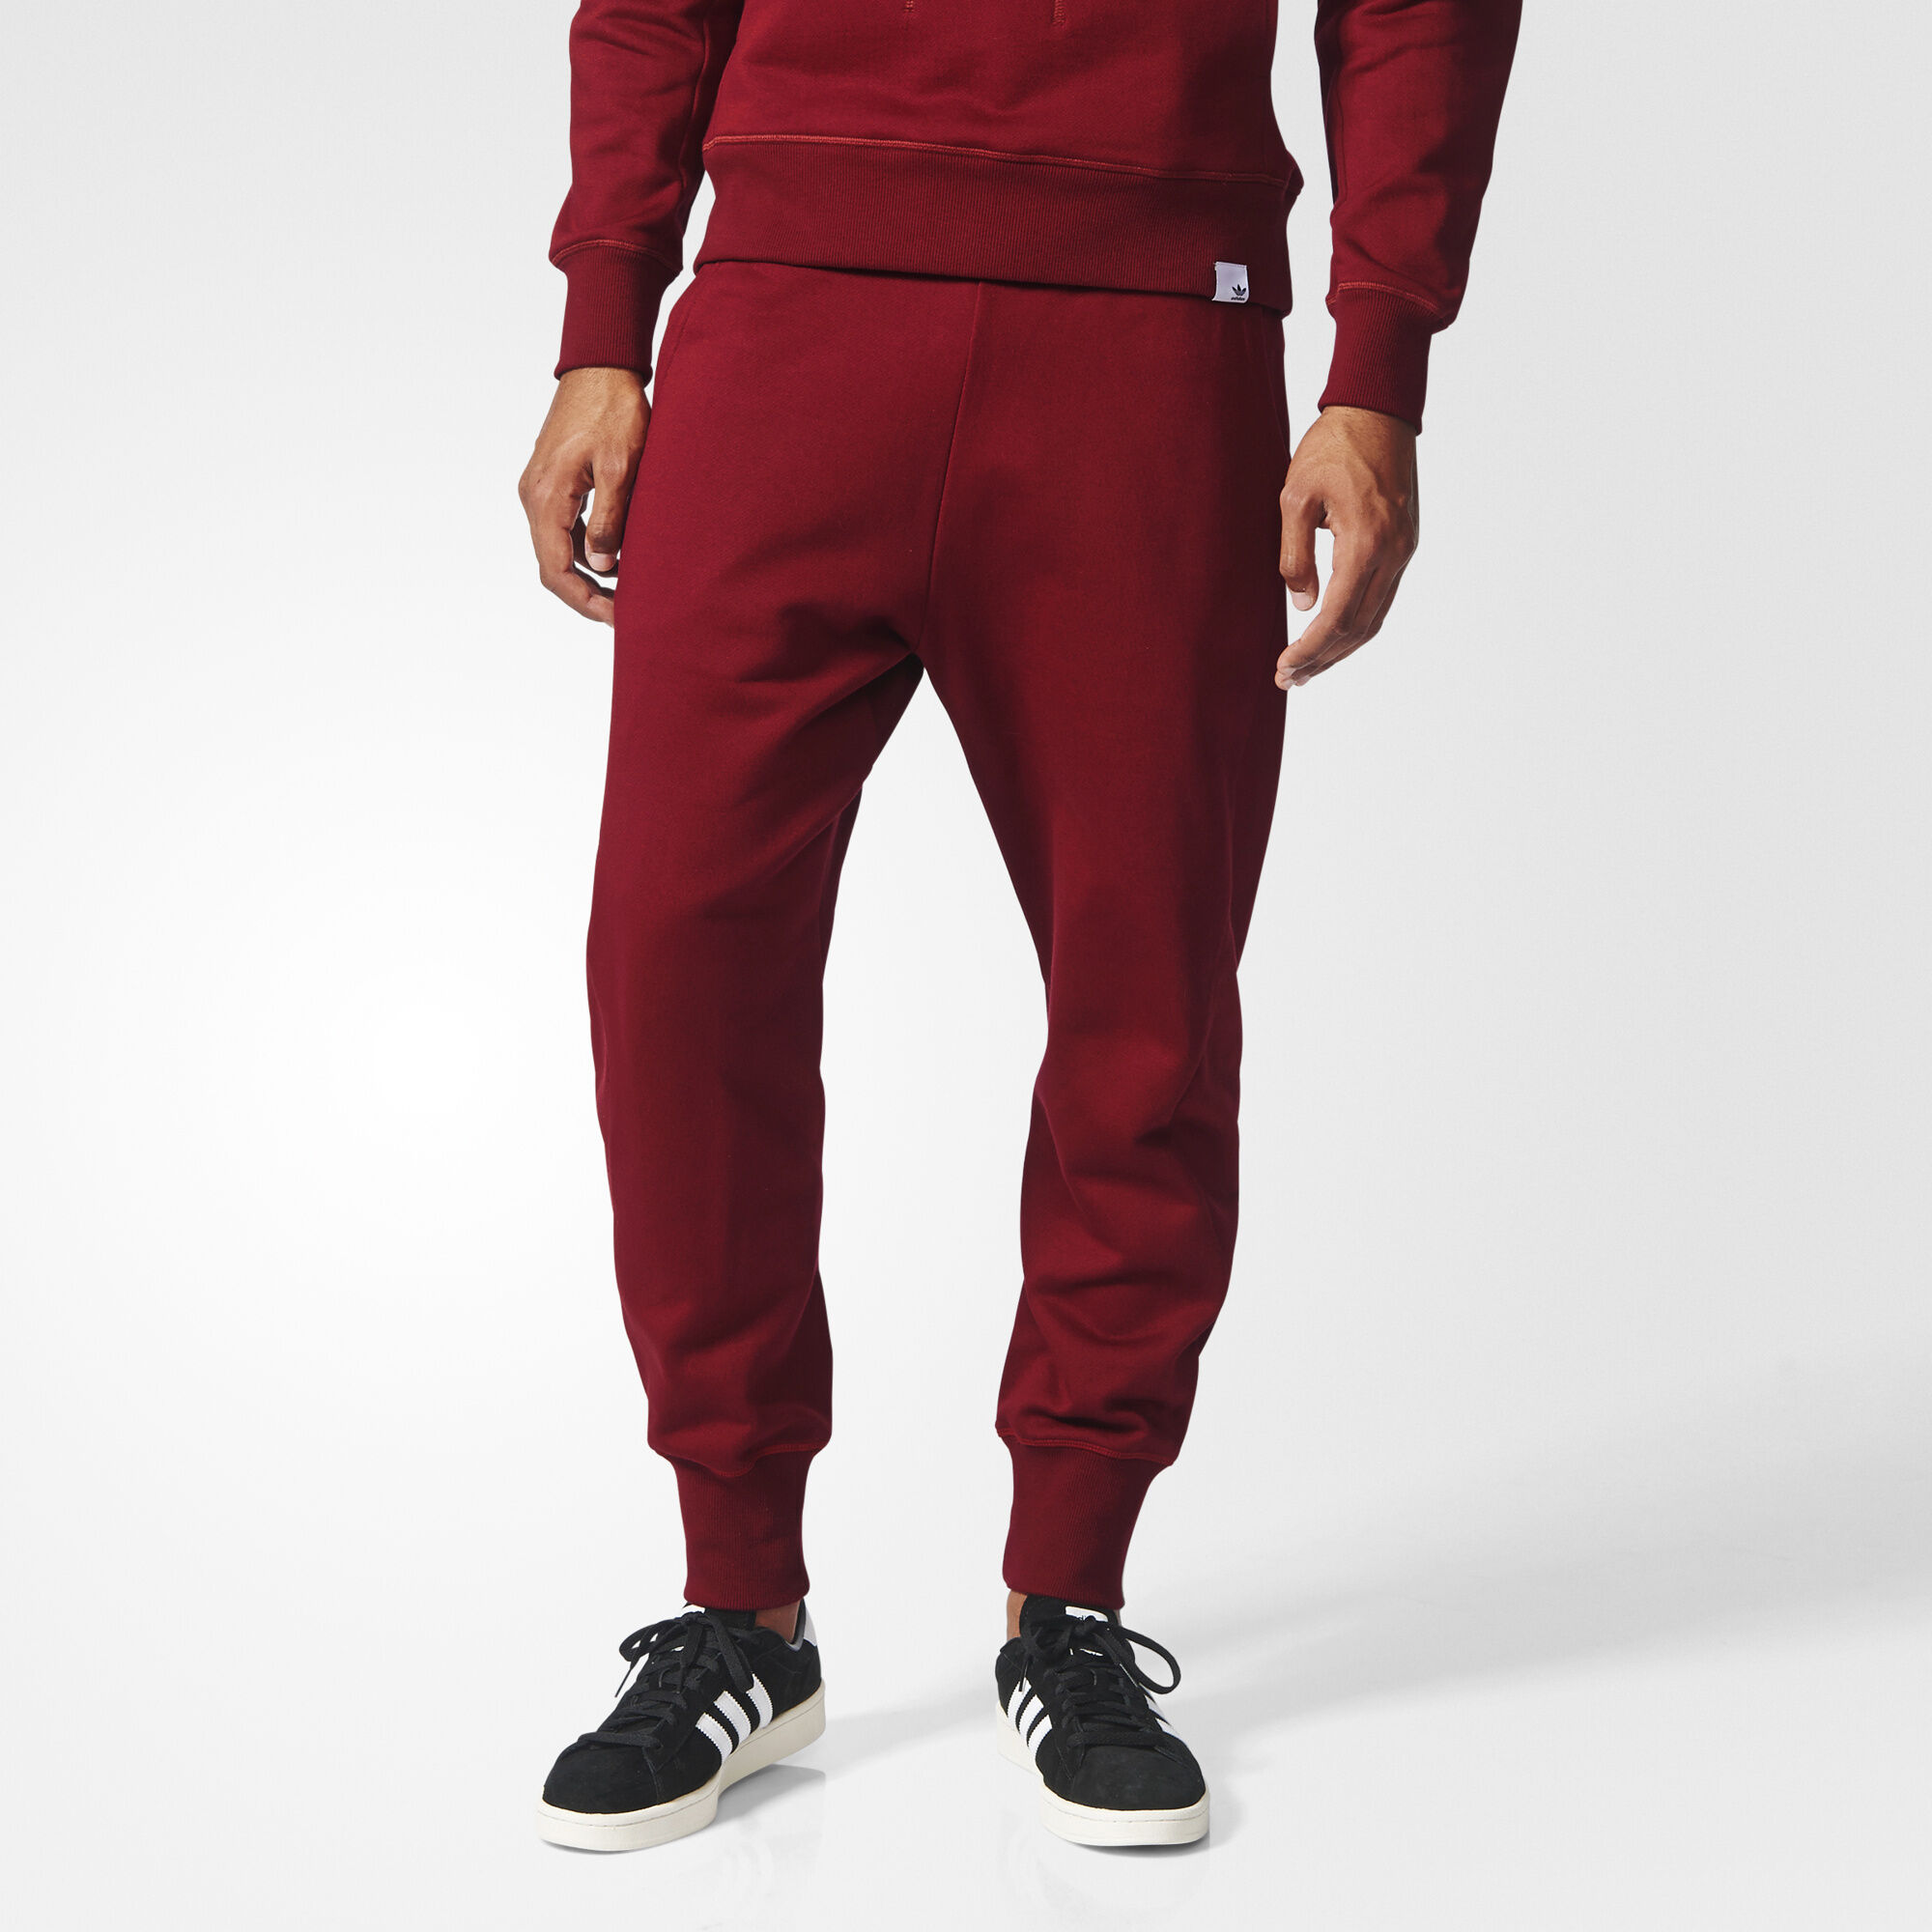 adidas Originals XBYO Sweatpant - Red